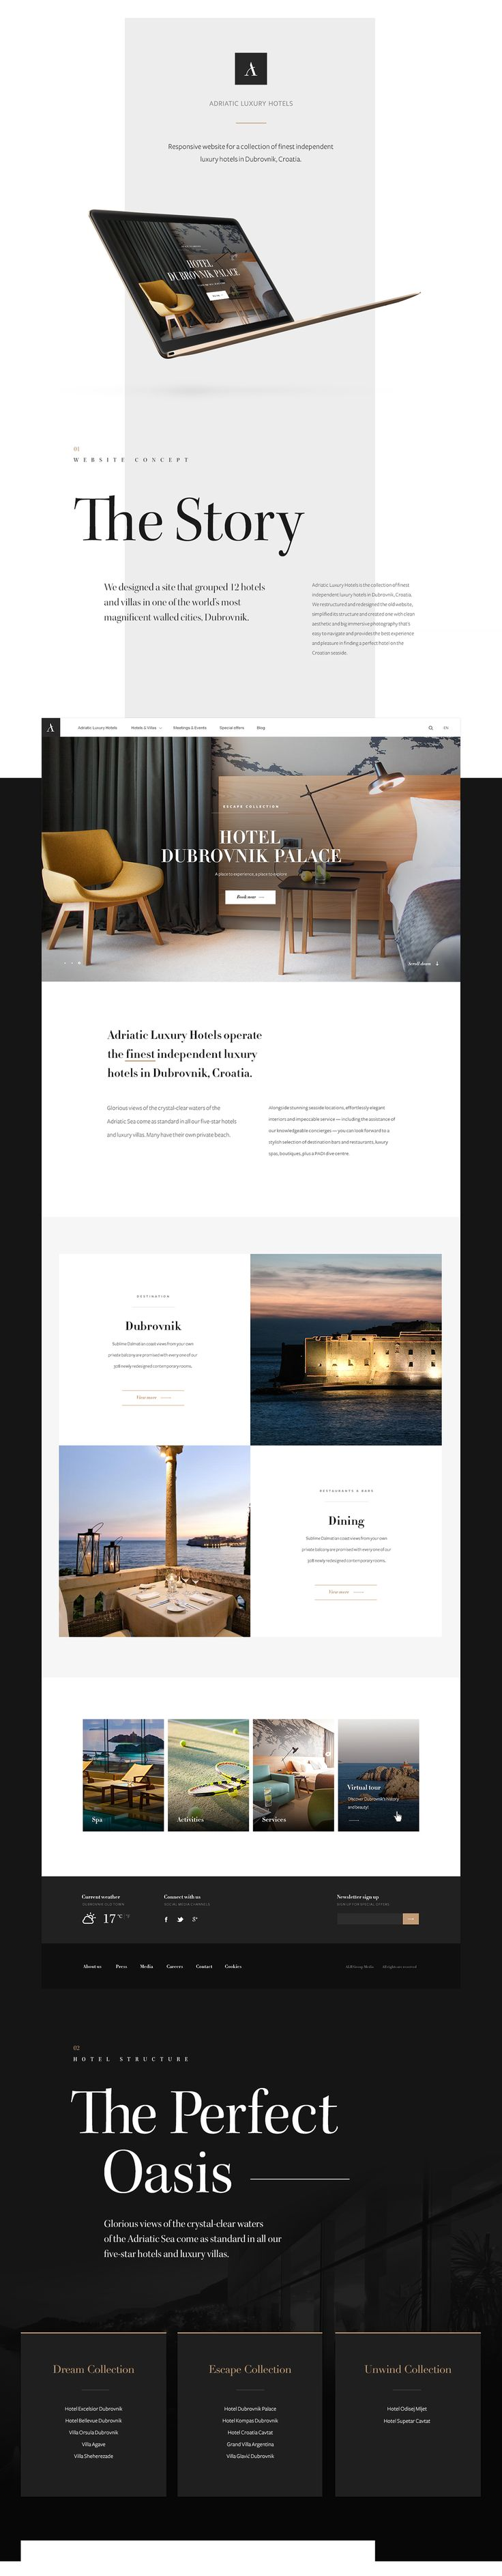 Adriatic Luxury Hotels Website | Abduzeedo Design Inspiration